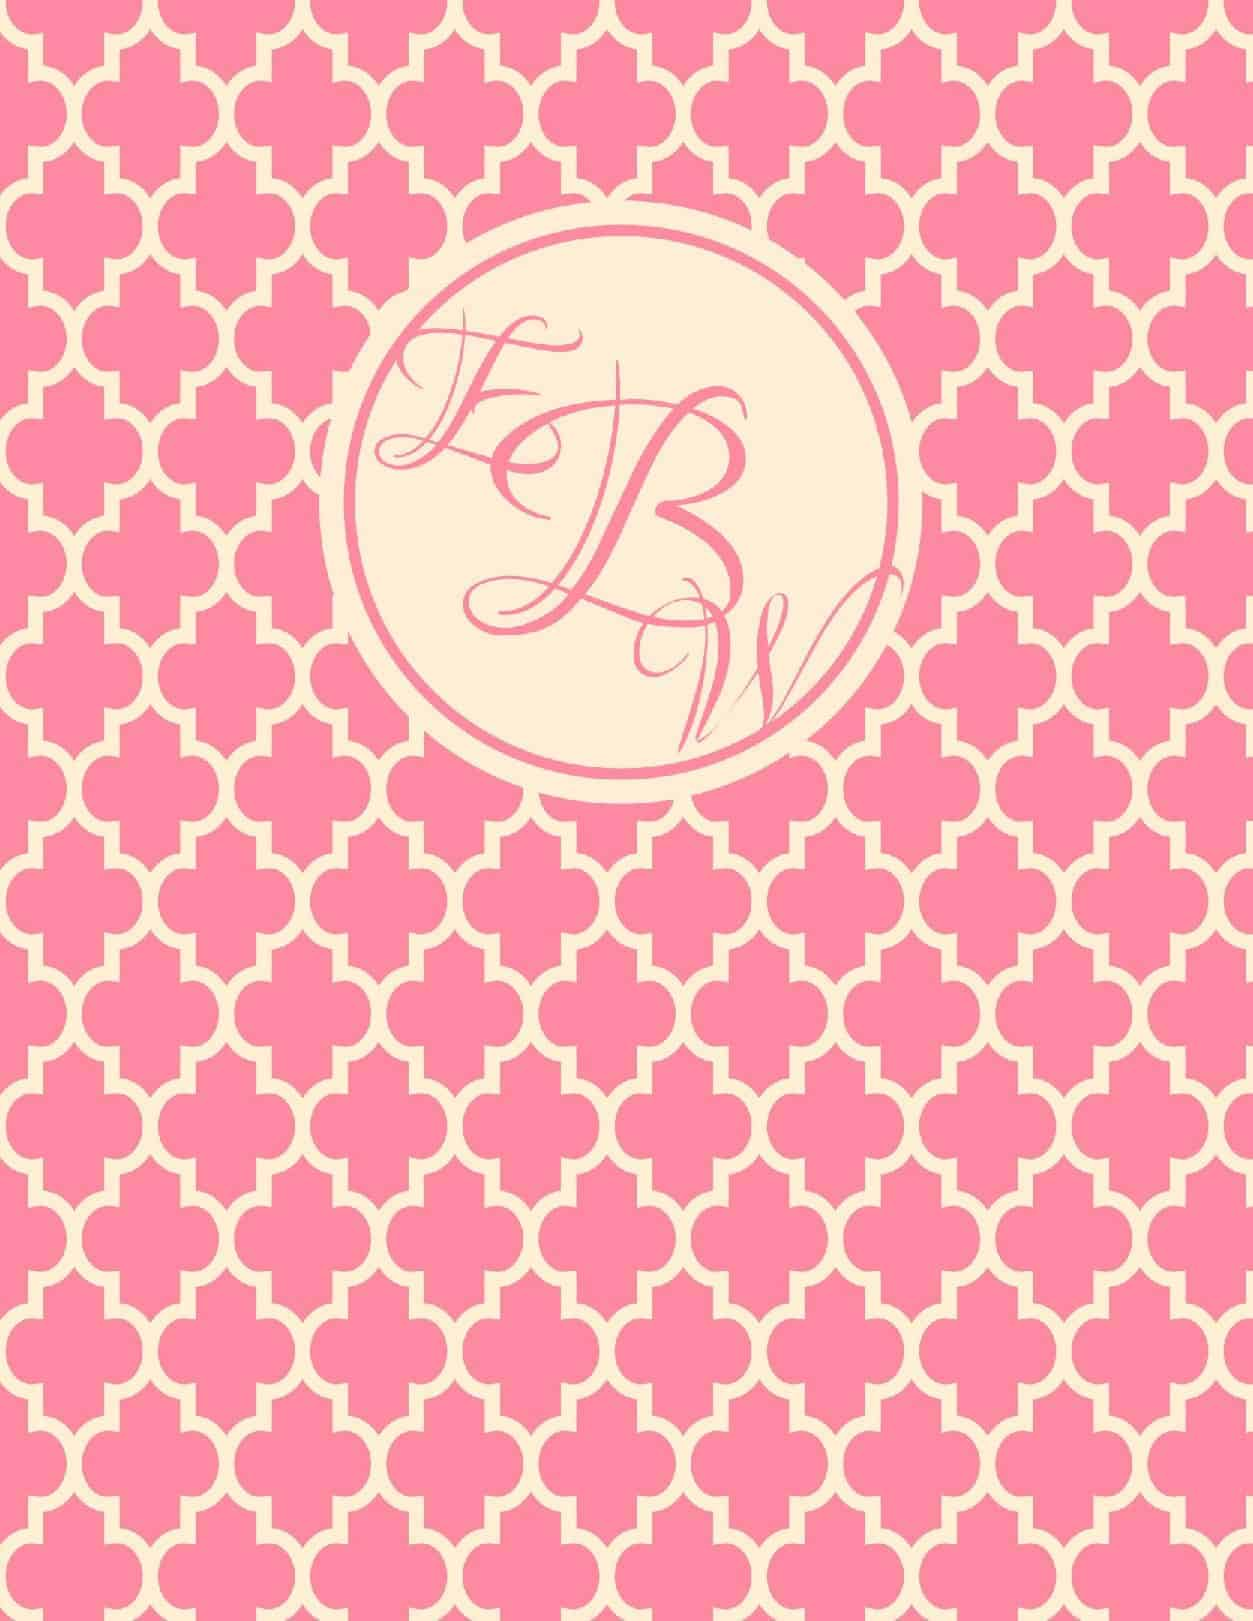 picture regarding Free Monogram Printable named No cost Monogram Binder Protect